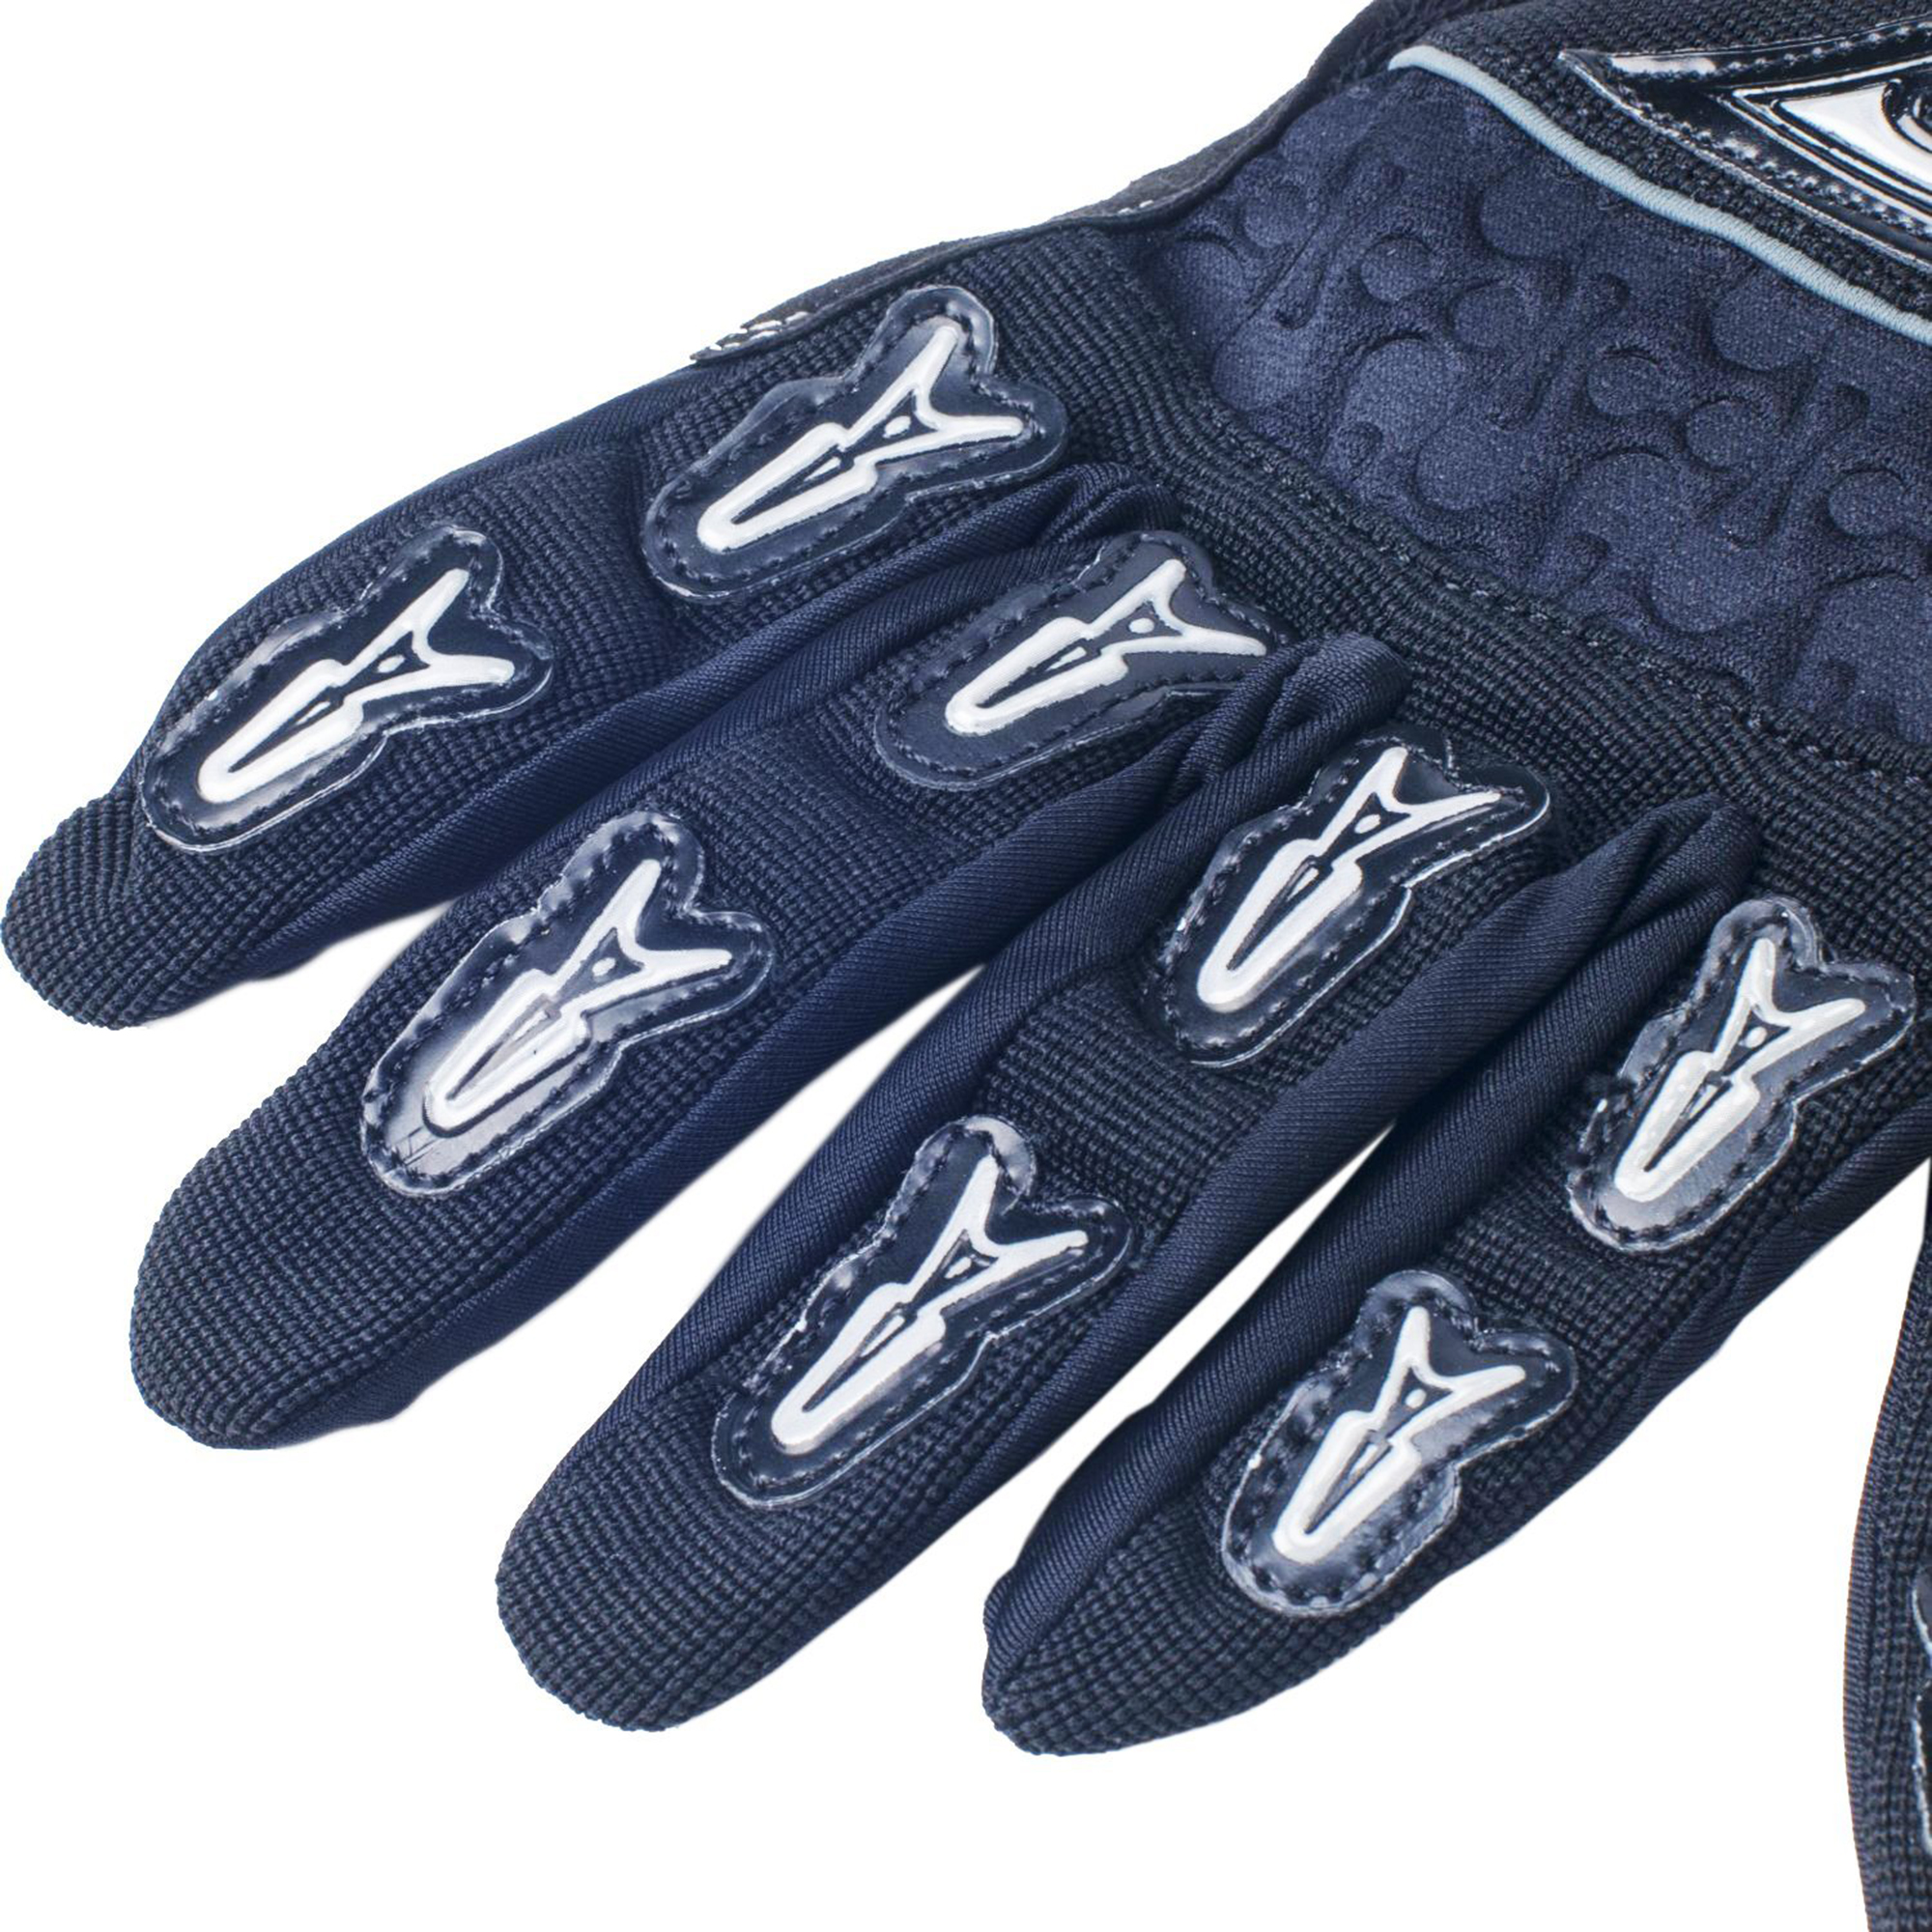 WEANAS Roswheel Professional Men's Cycling Gloves Thermal Softshell Lite Glove Black Gray (X-large) by Weanas